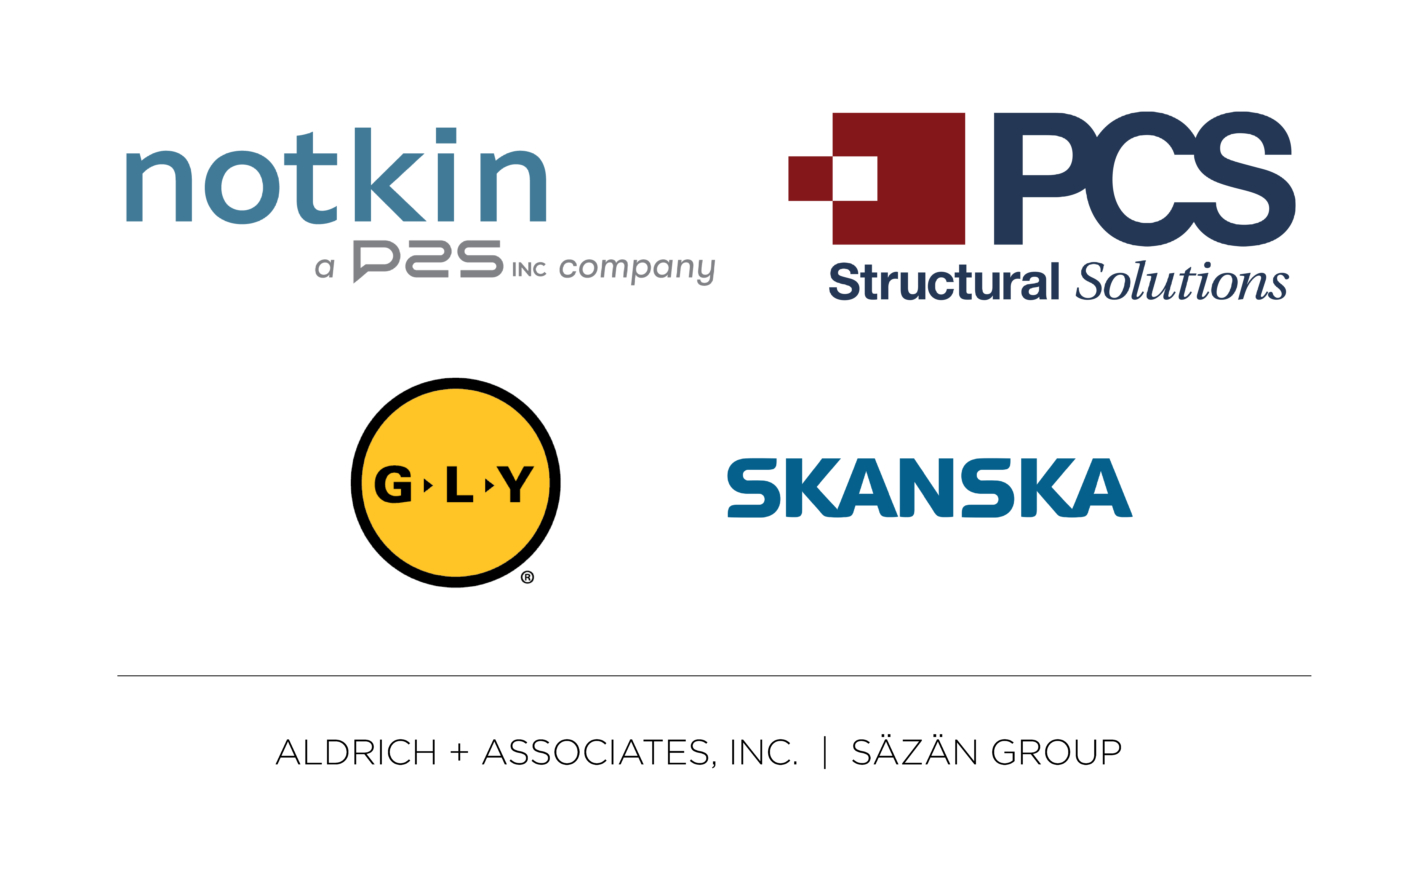 Dark text on white background; Topline text with logos: Notkin - A P2S Company; PCS Structural Solutions; Skanska; yellow circle with black border reading GLY. Second link, text only: Aldrich & Associates Inc.; Sazan Group